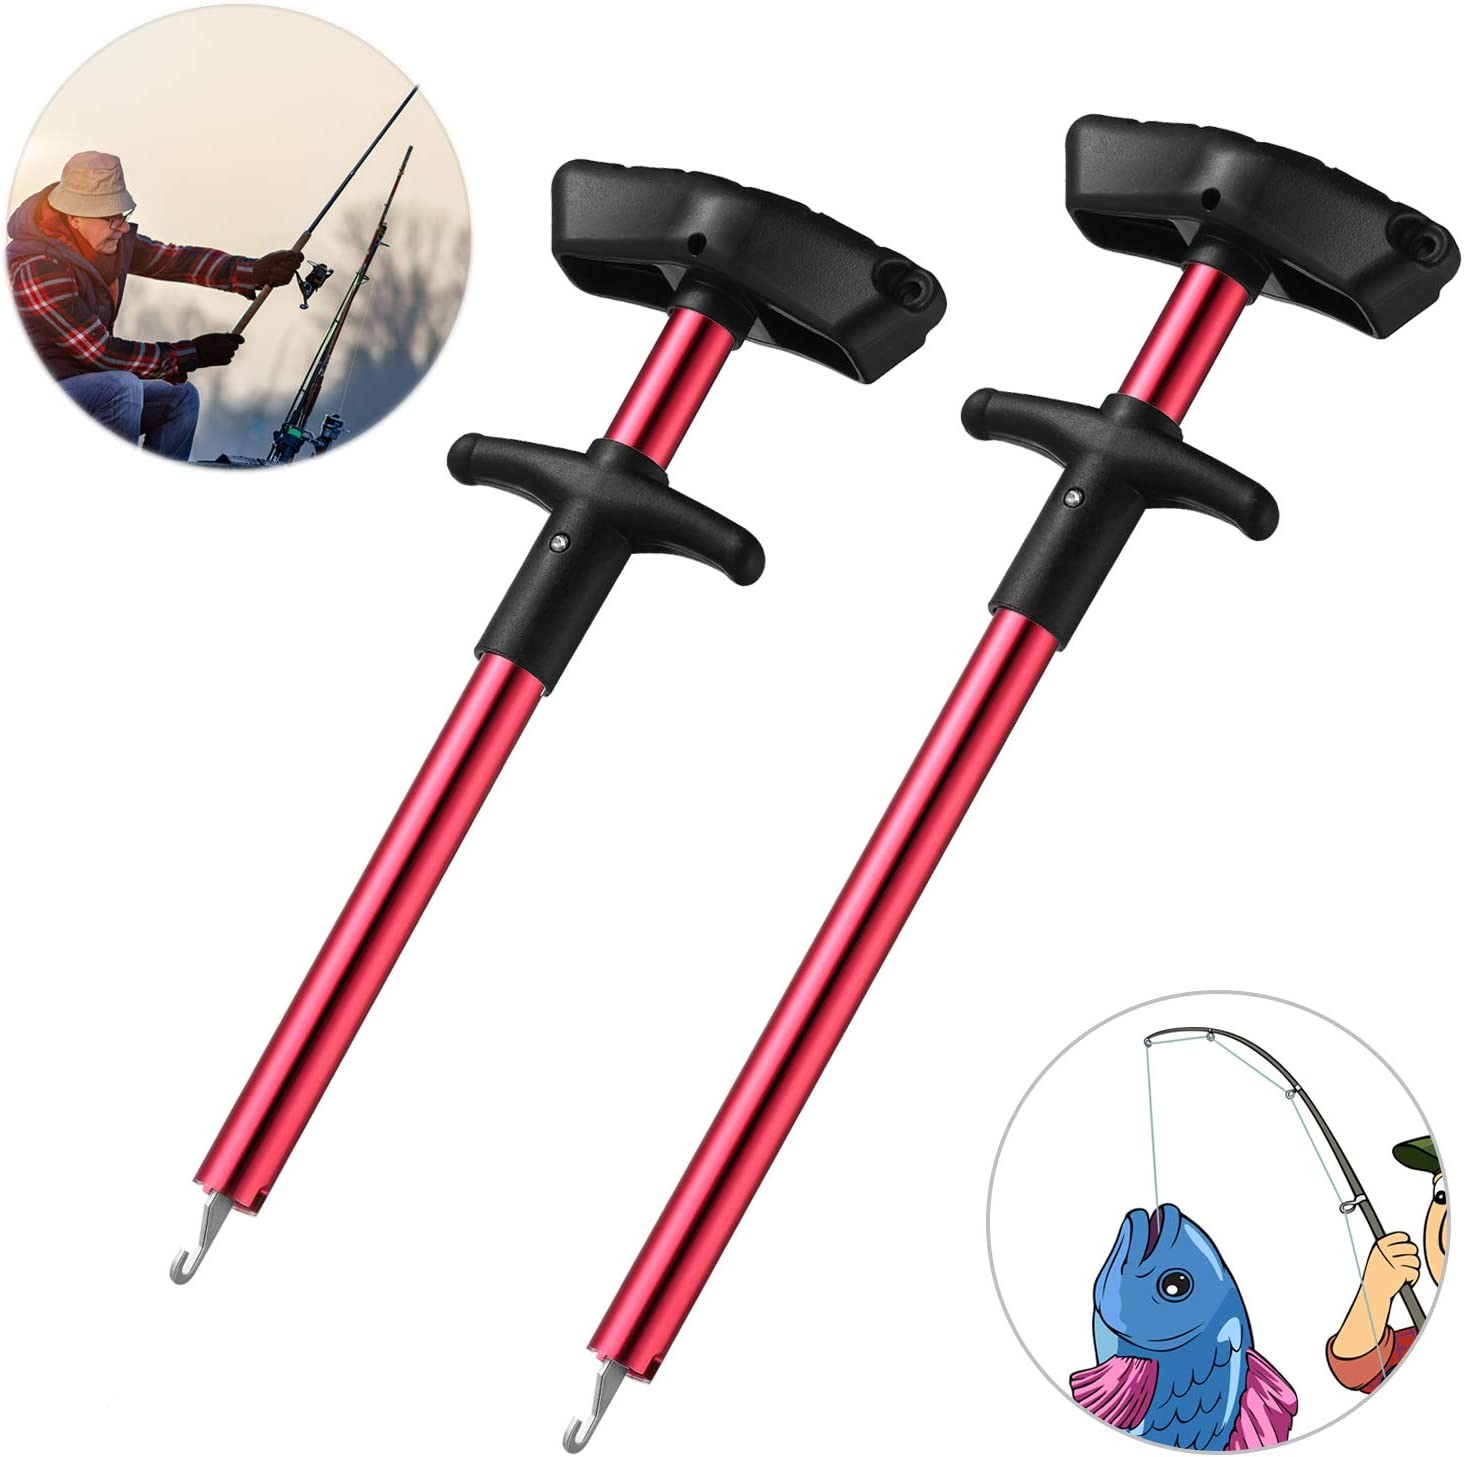 Syhood 2 Pieces Fish Hook Remover T-Shaped Hook Puller Fish Hook Separator Fishing Tool